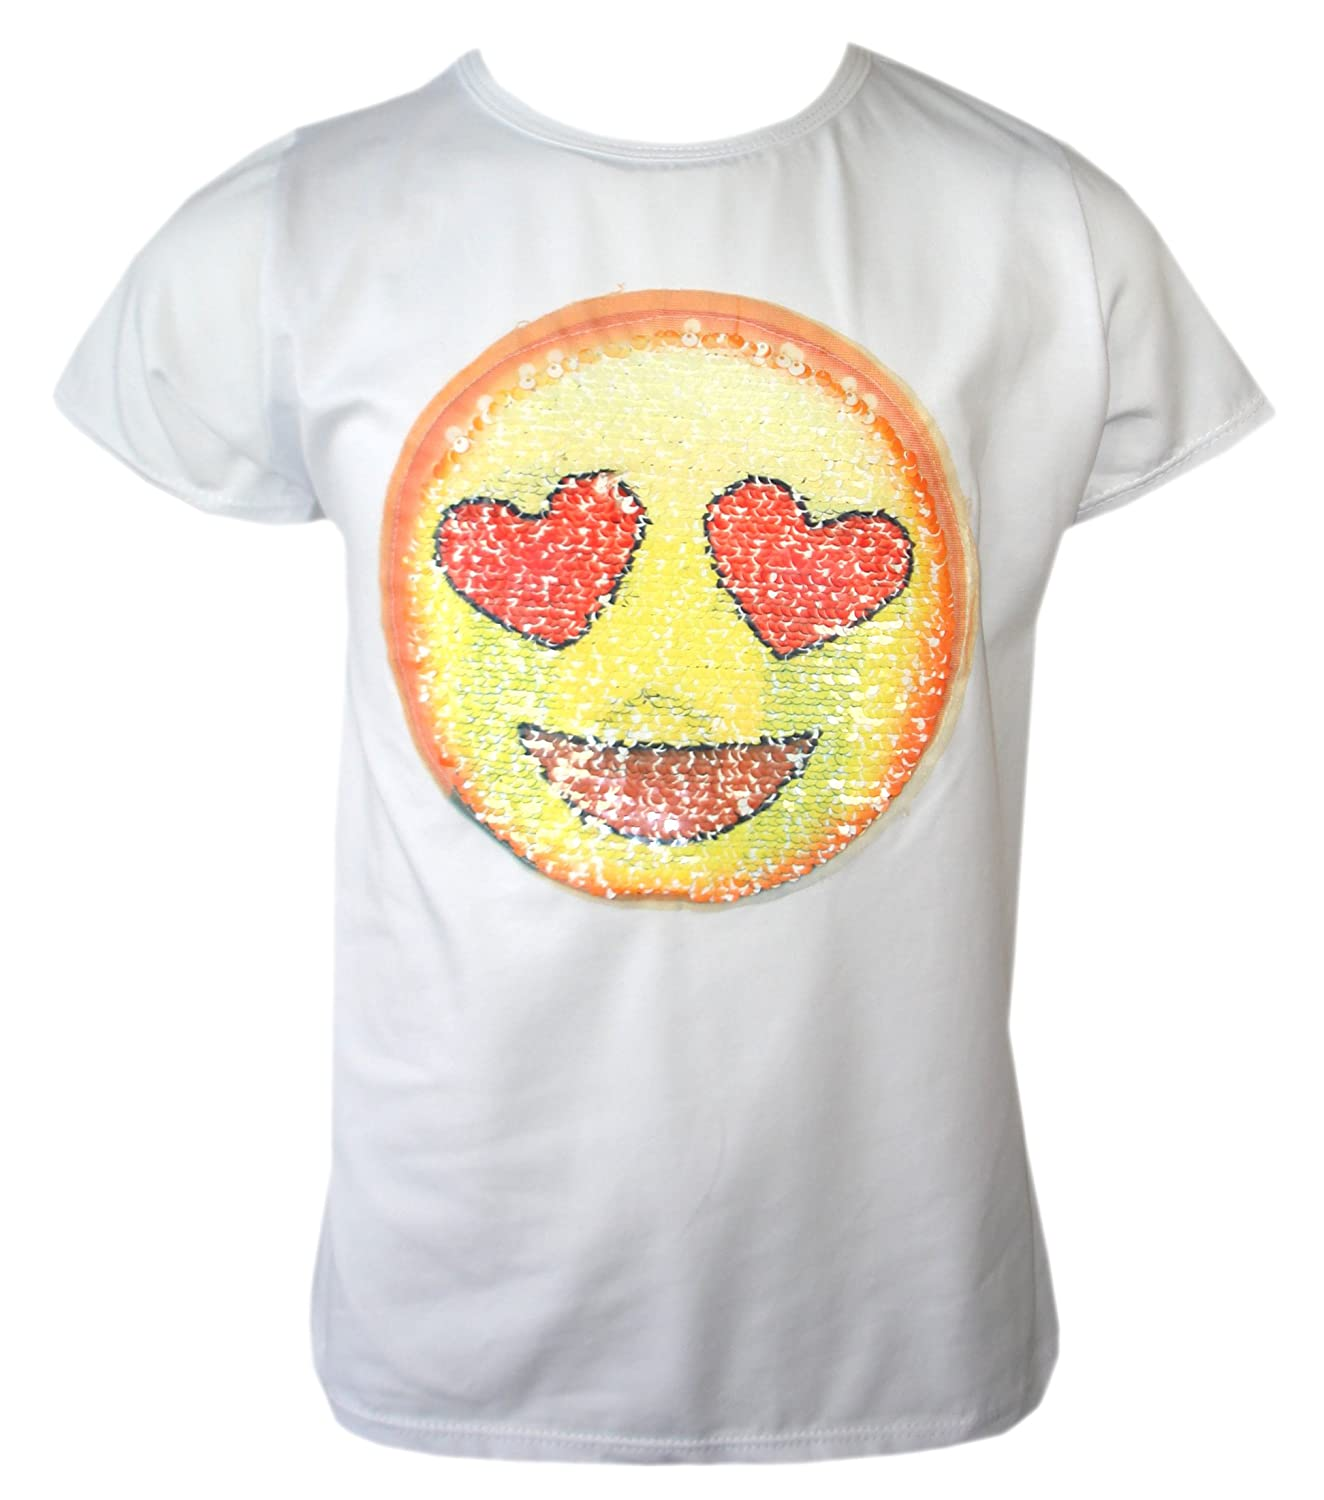 KIDS EMOJI EMOTICONS SMILEY FACE T SHIRT TEE TOP BRUSH CHANGING SEQUIN AGE 3-14 YEARS